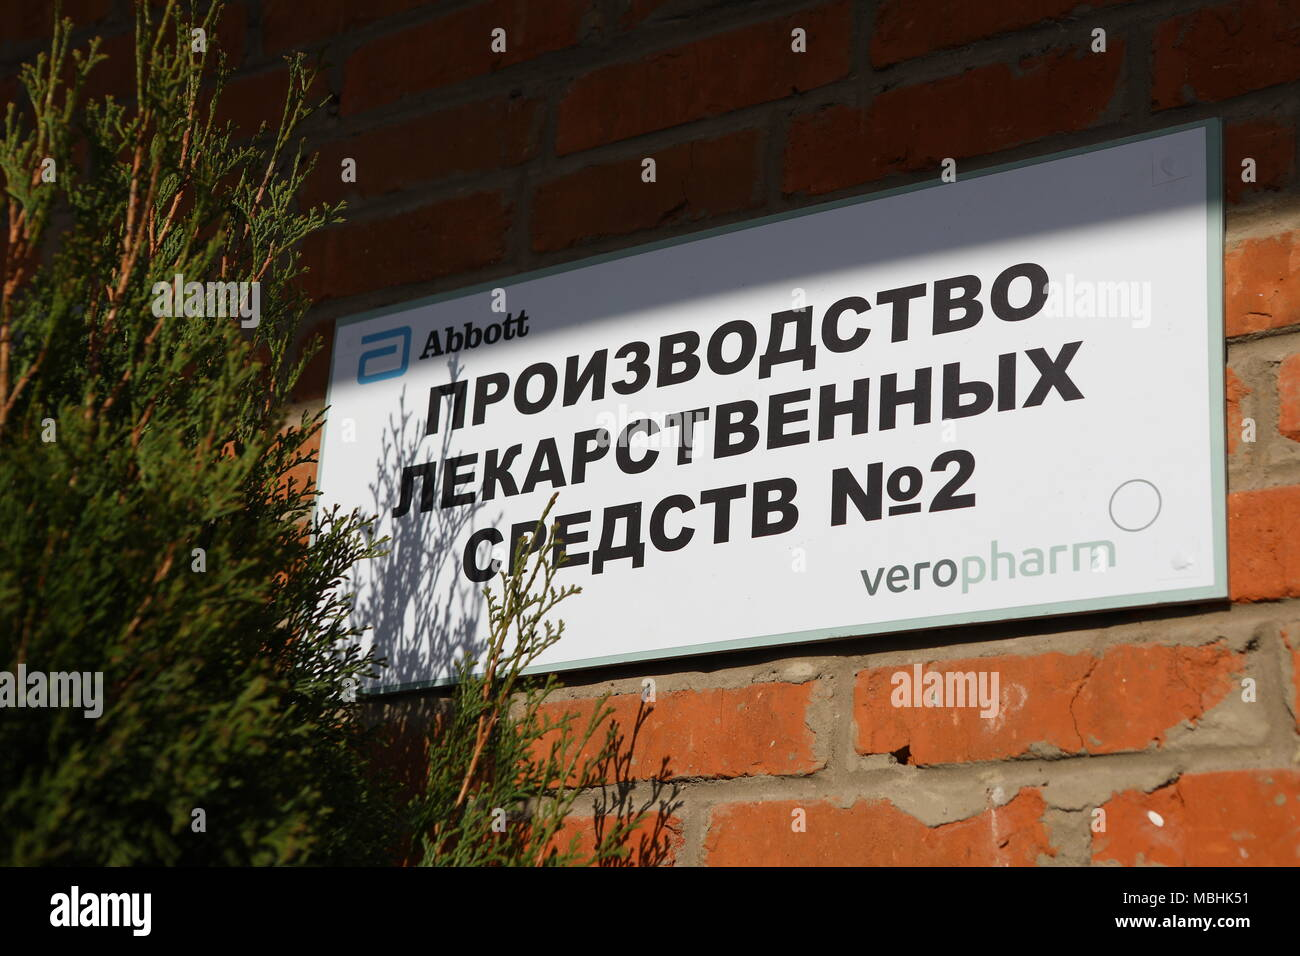 Belgorod, Russia. 10th Apr, 2018. BELGOROD, RUSSIA - APRIL 10, 2018: A sign at the Veropharm pharmaceutical plant where a new production line of Abbott's hormonal drugs has been launched. Anton Vergun/TASS Credit: ITAR-TASS News Agency/Alamy Live News - Stock Image